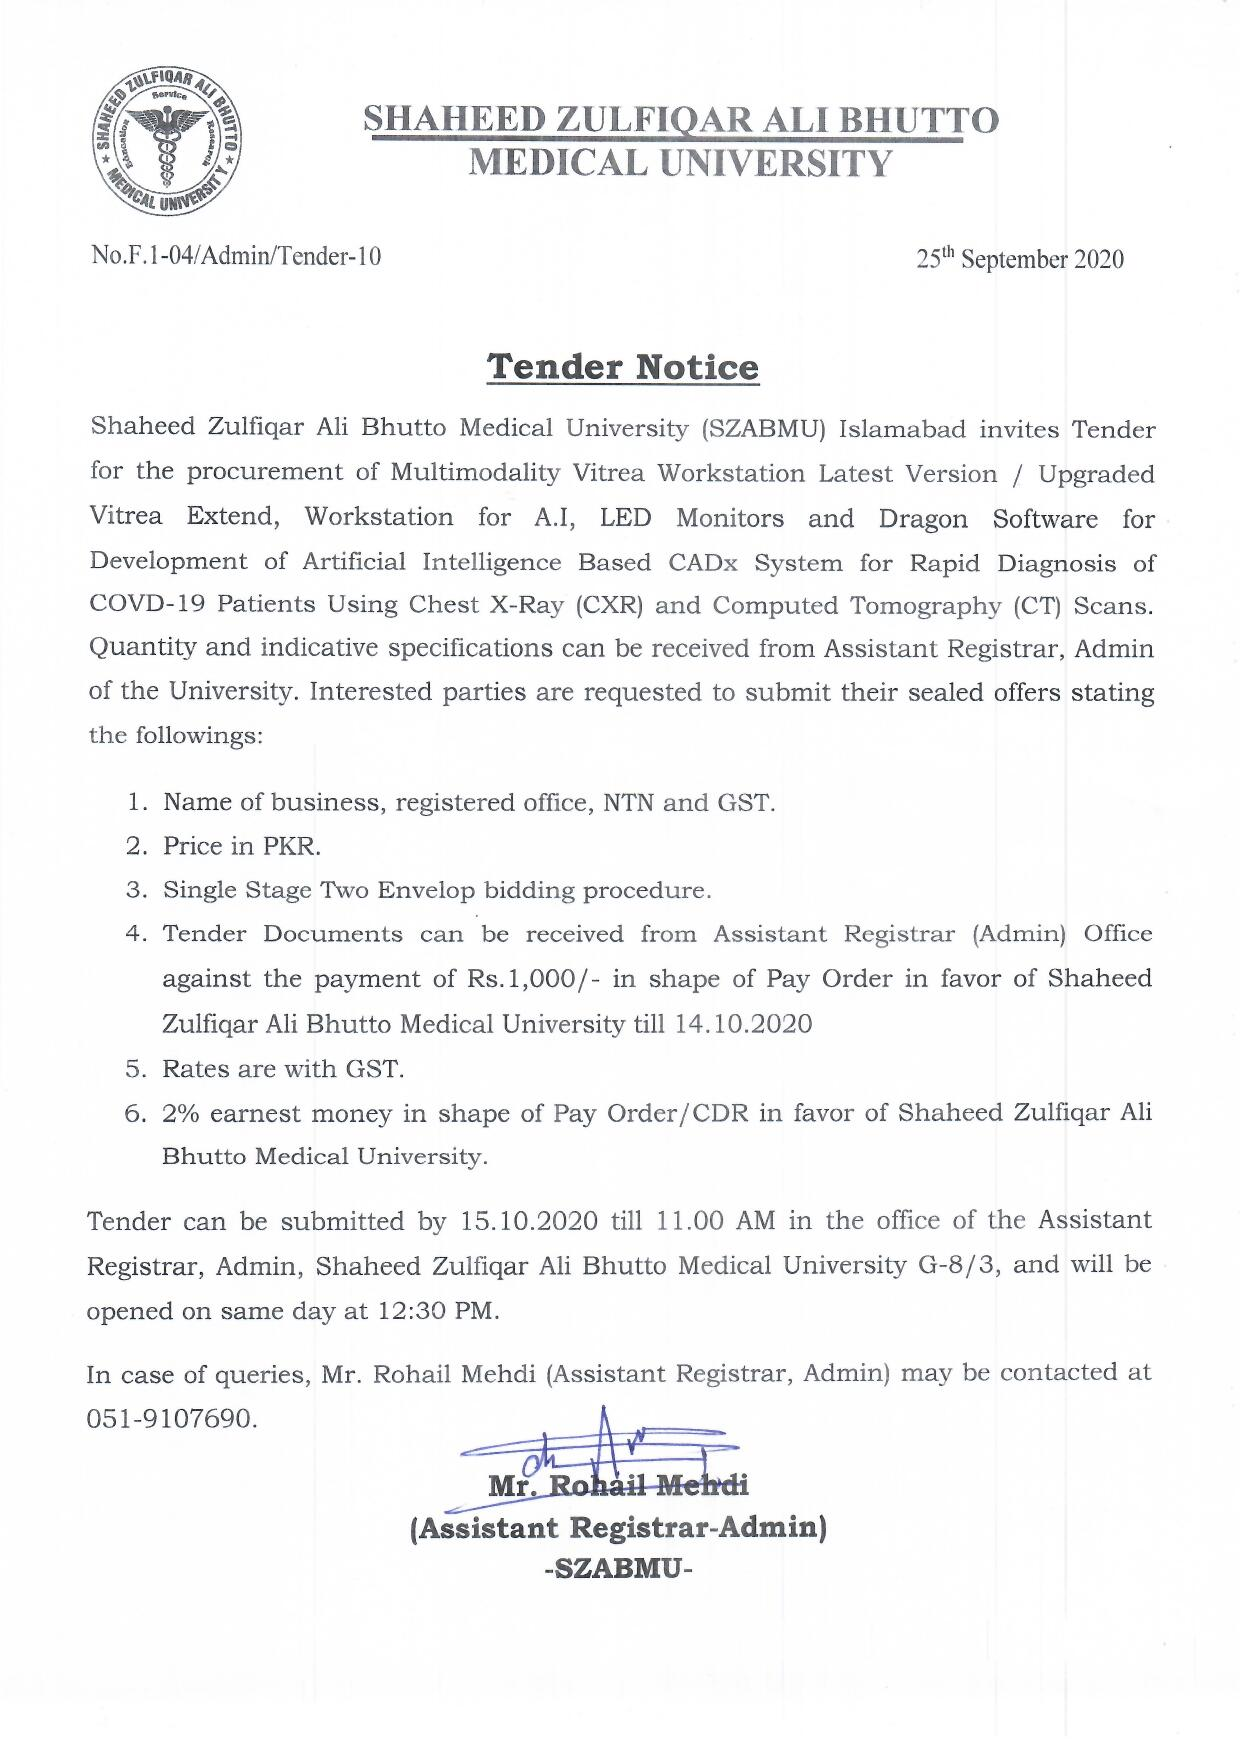 Tender Notice for the Procurement of Medical Equipment